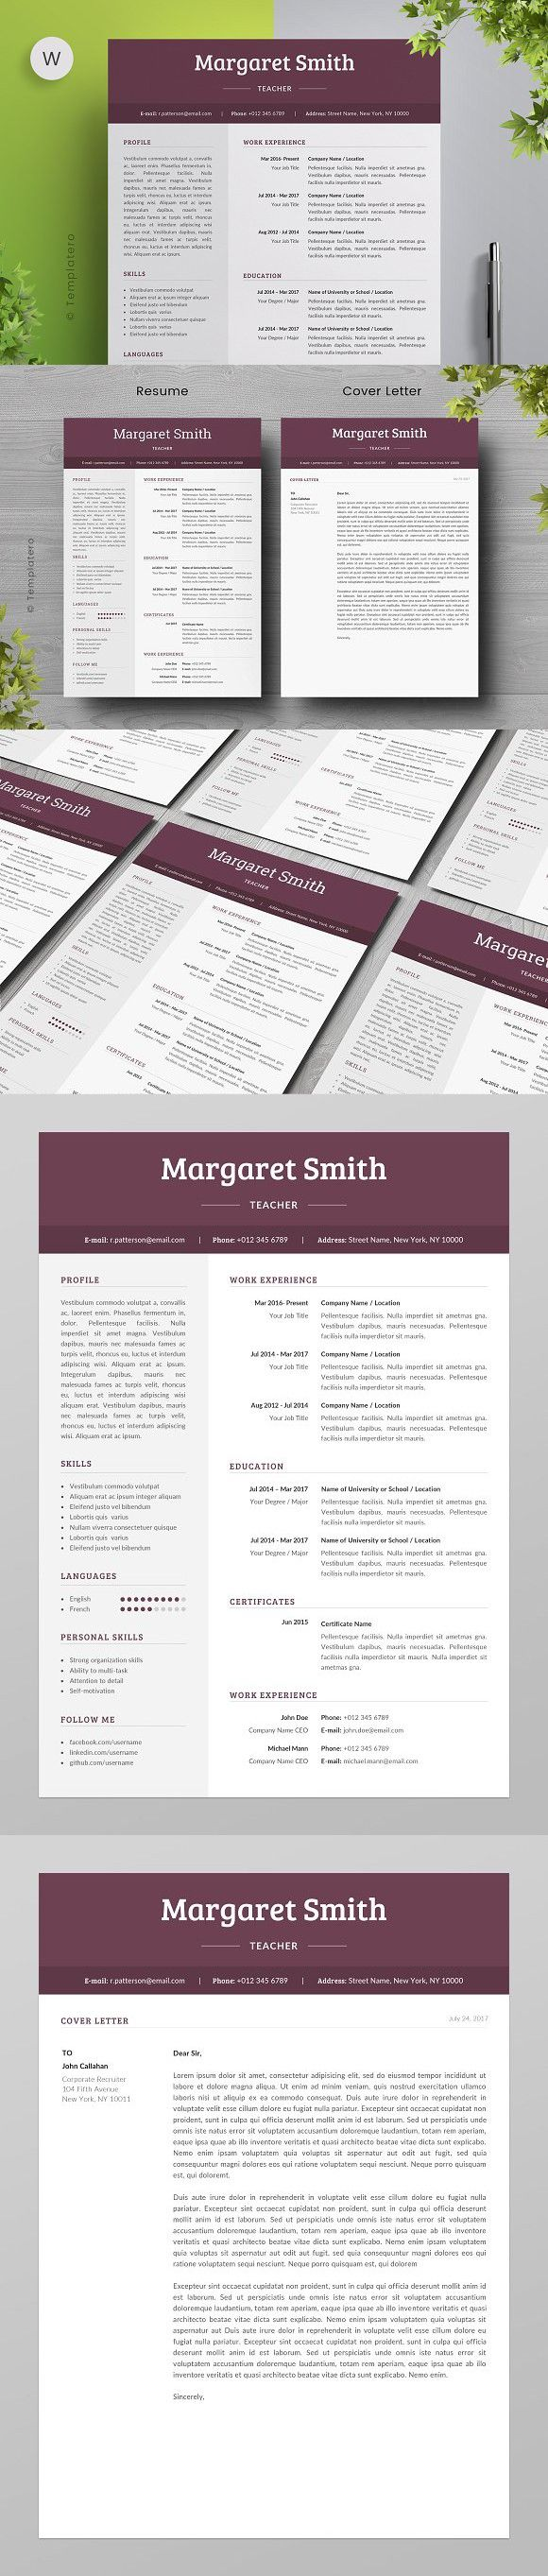 bartender job description resume%0A Resume Template   Free Cover Letter  Resume Templates